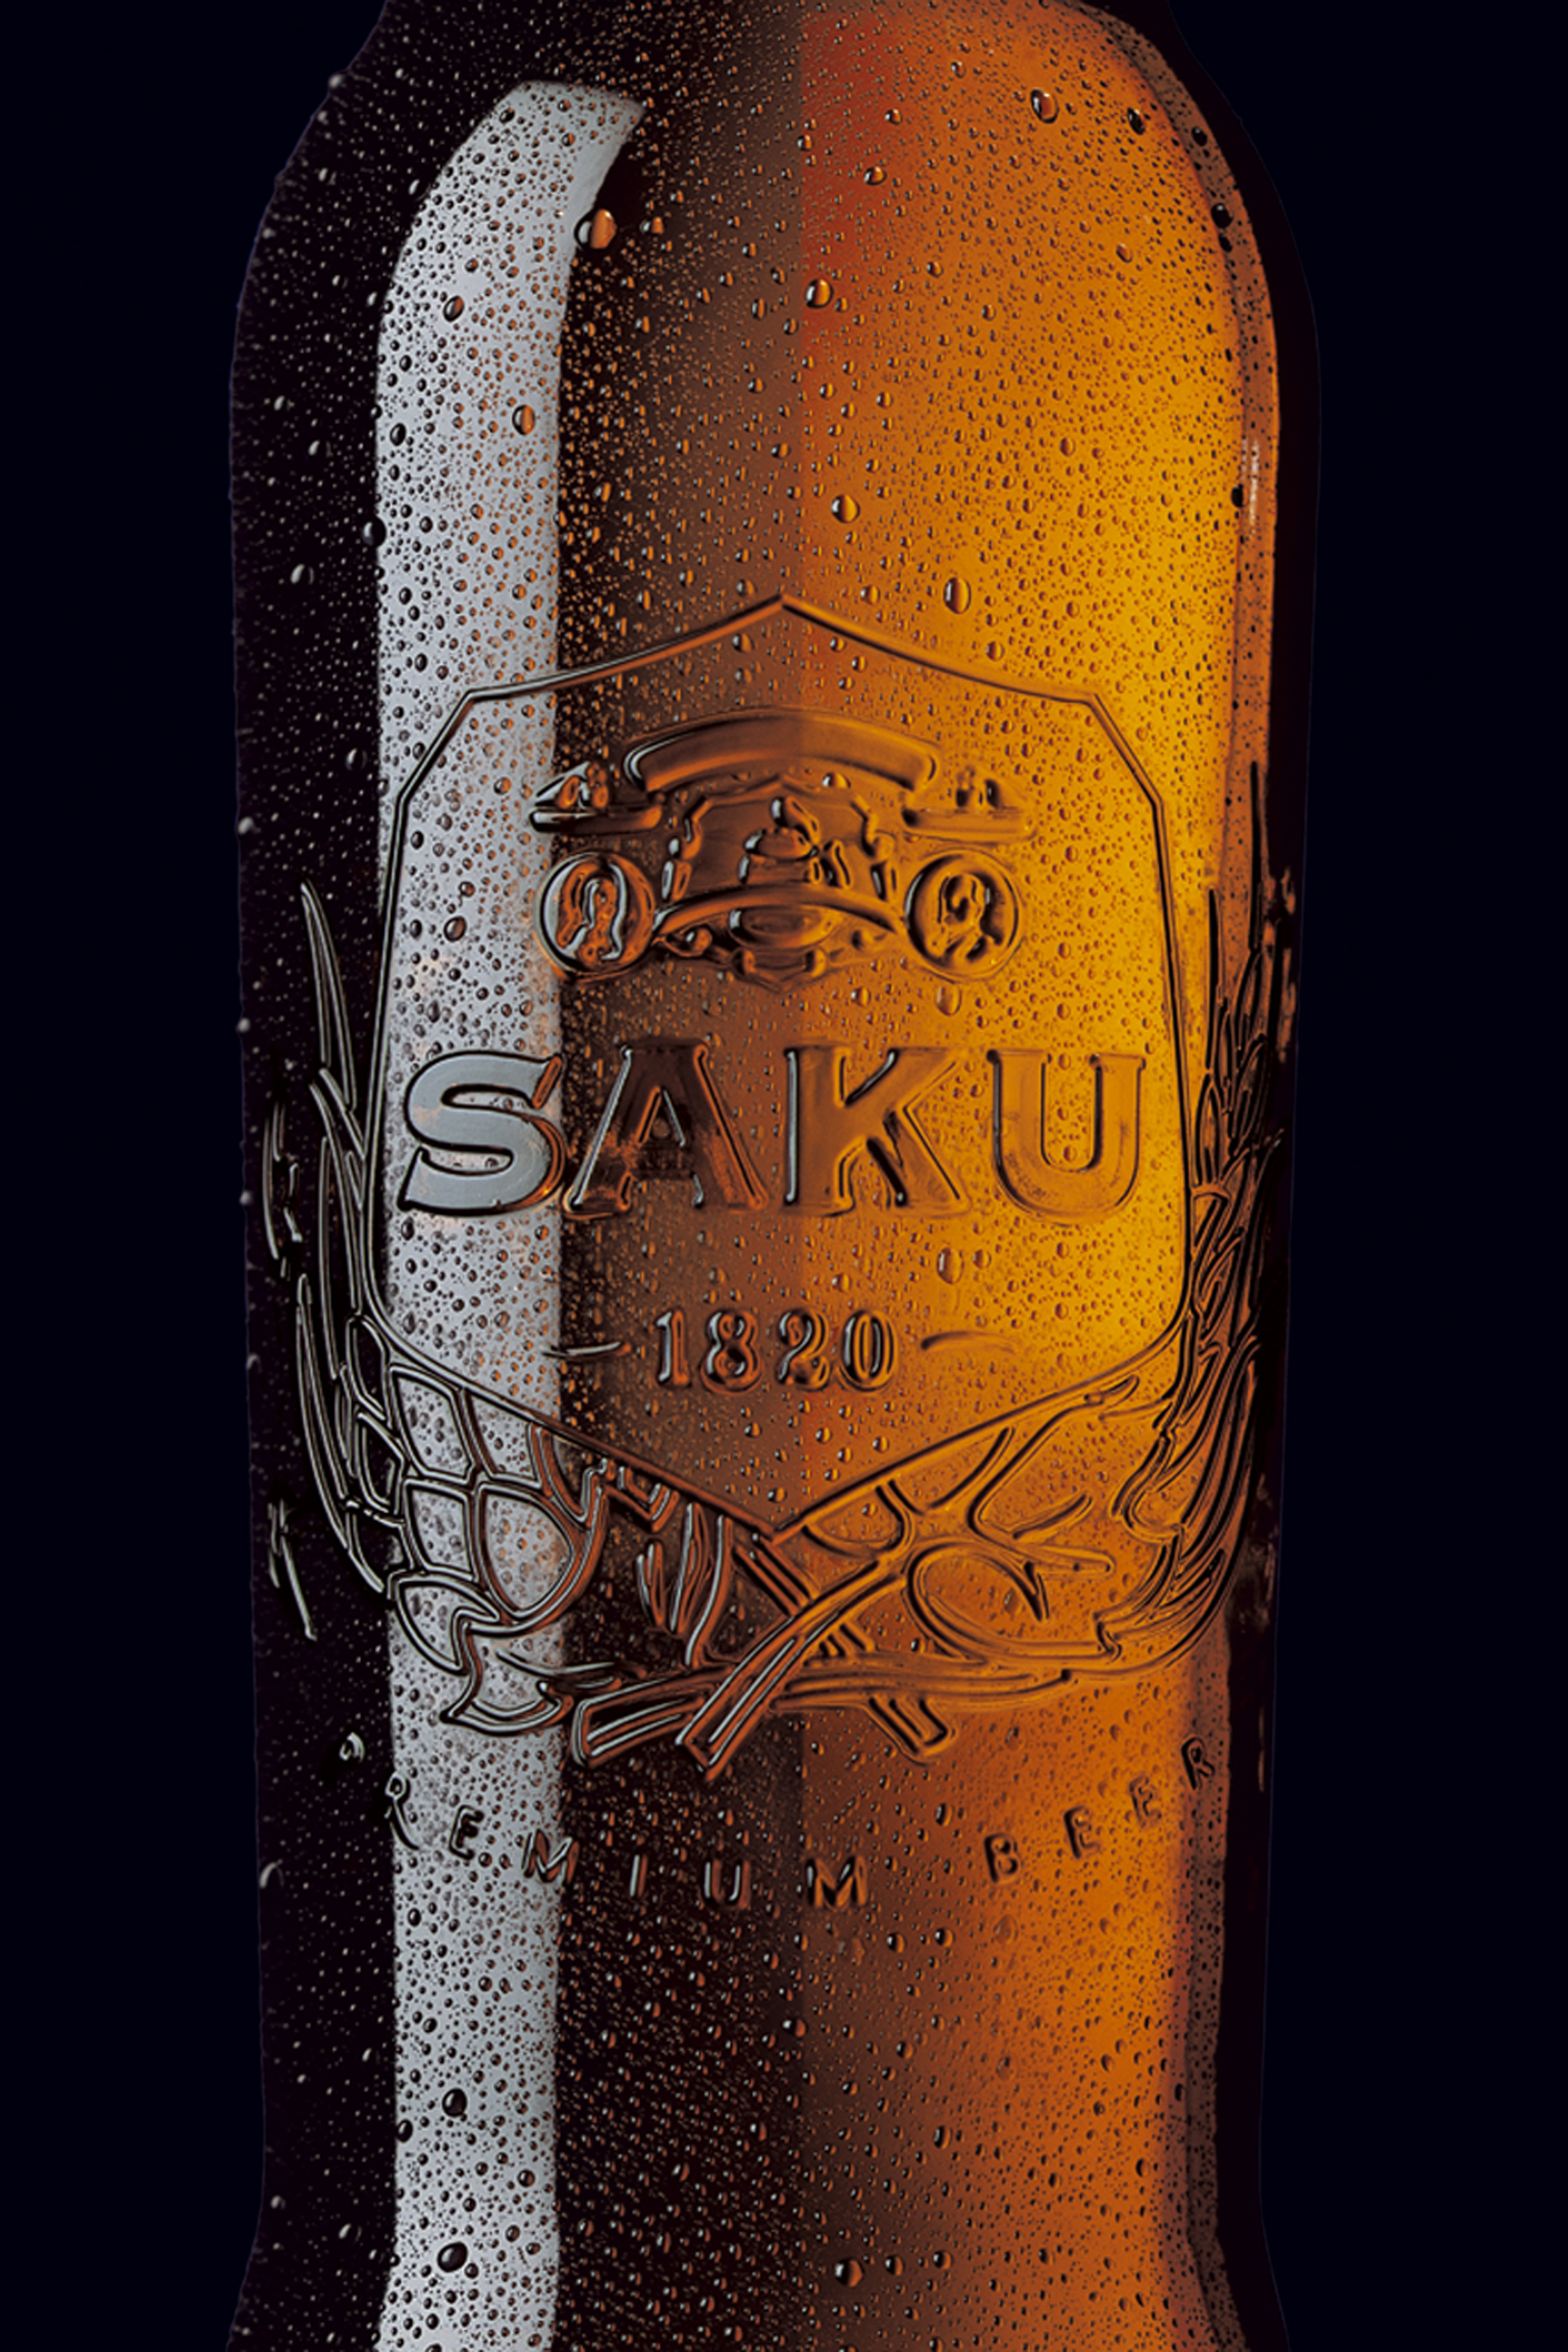 packaging / saku beer